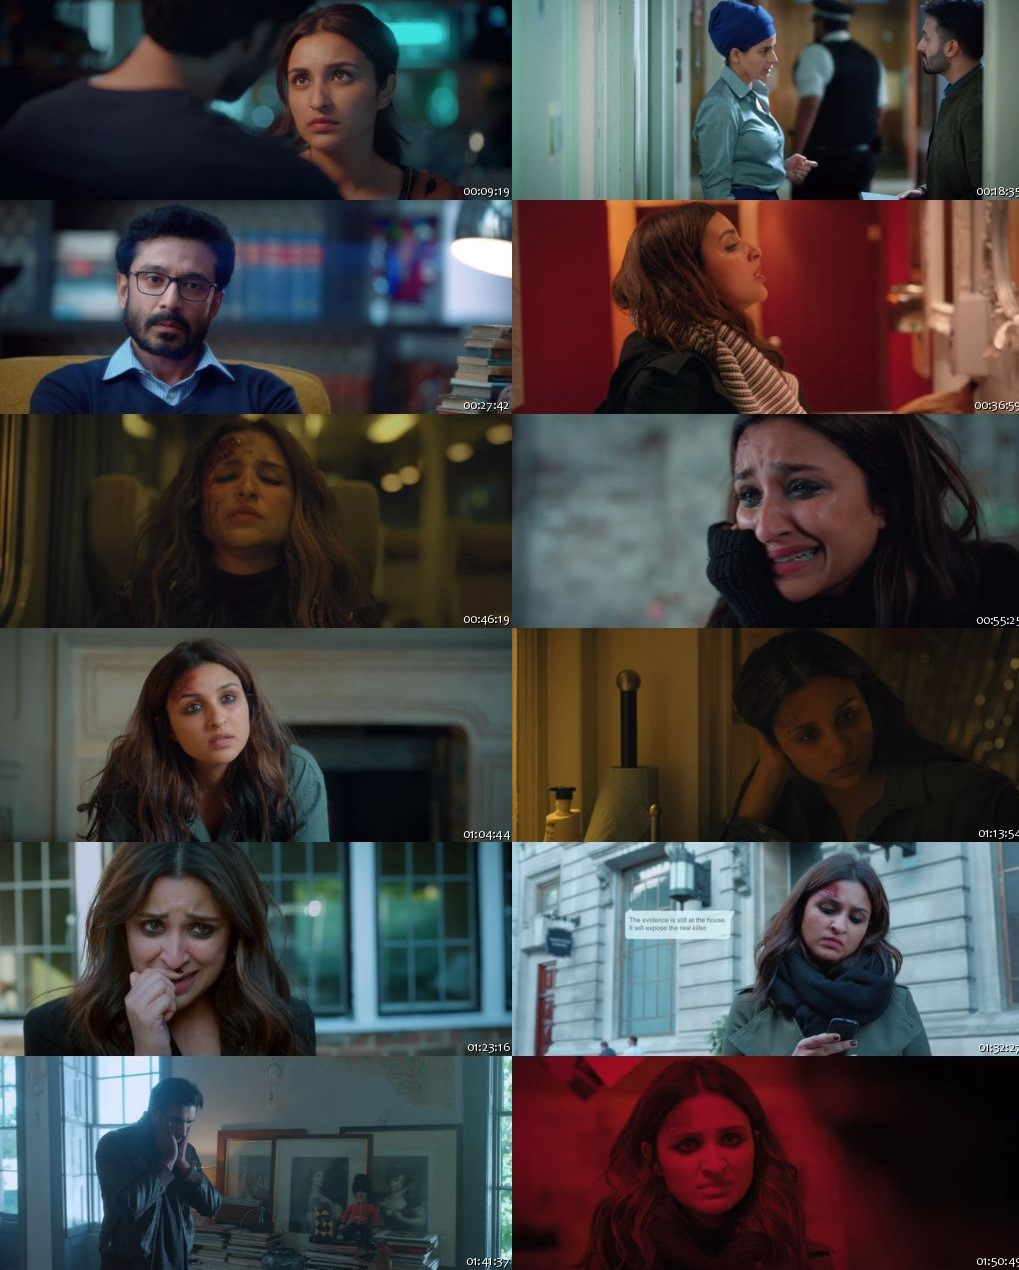 The Girl on the Train 2021 Full Movie Online Watch HDRip 480p 300Mb